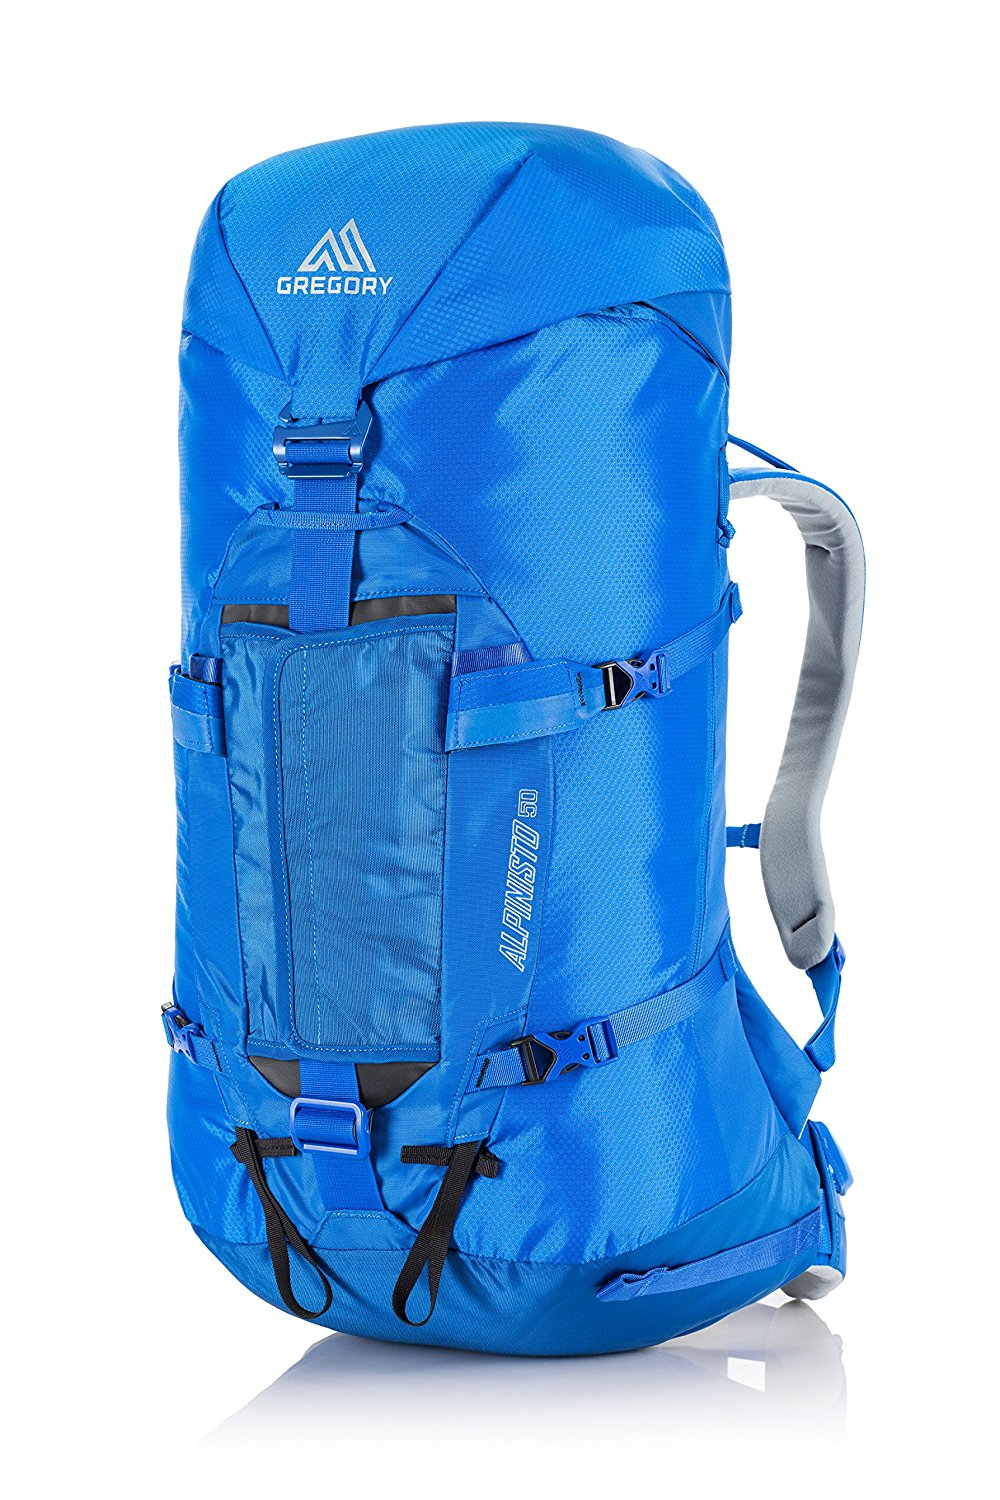 German Hiking Backpack Brands- Fenix Toulouse Handball a14b62a772e15